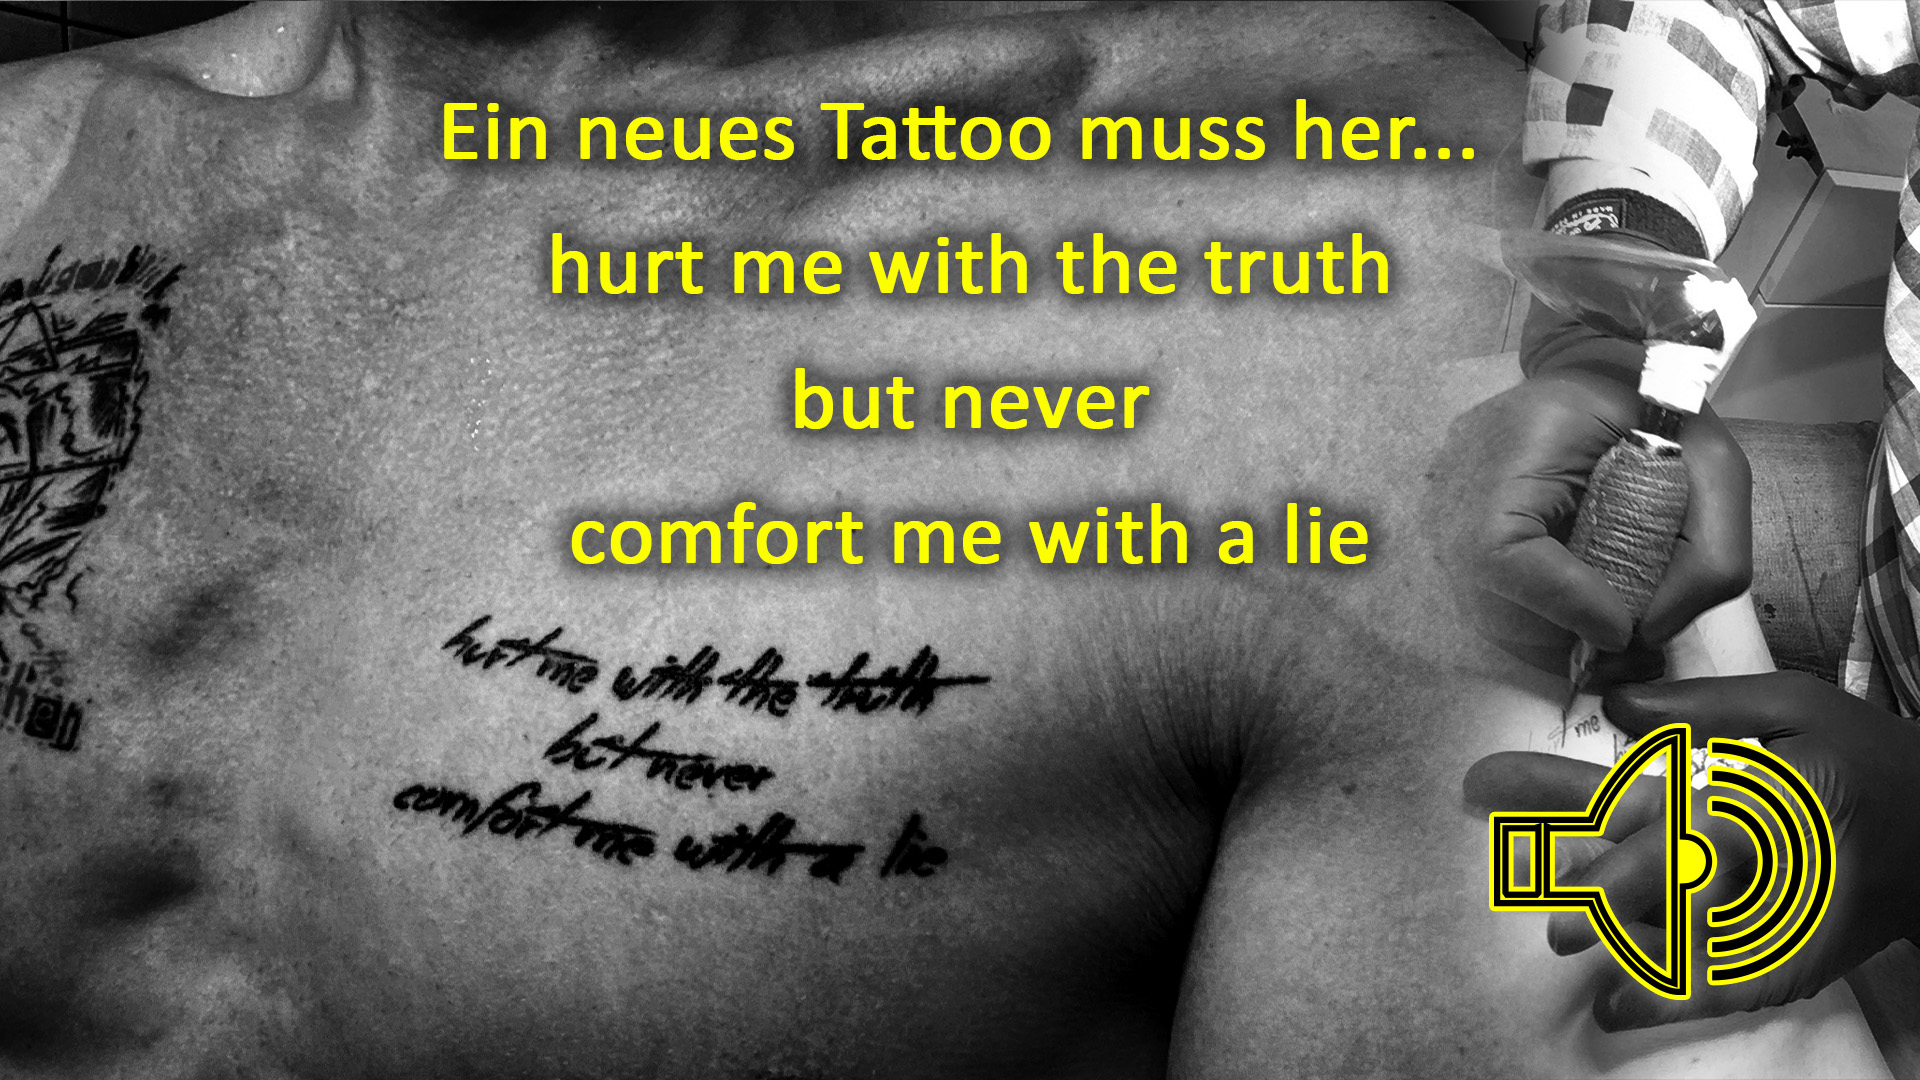 Ein neues Tattoo muss her... hurt me with the truth but never comfort me with a lie